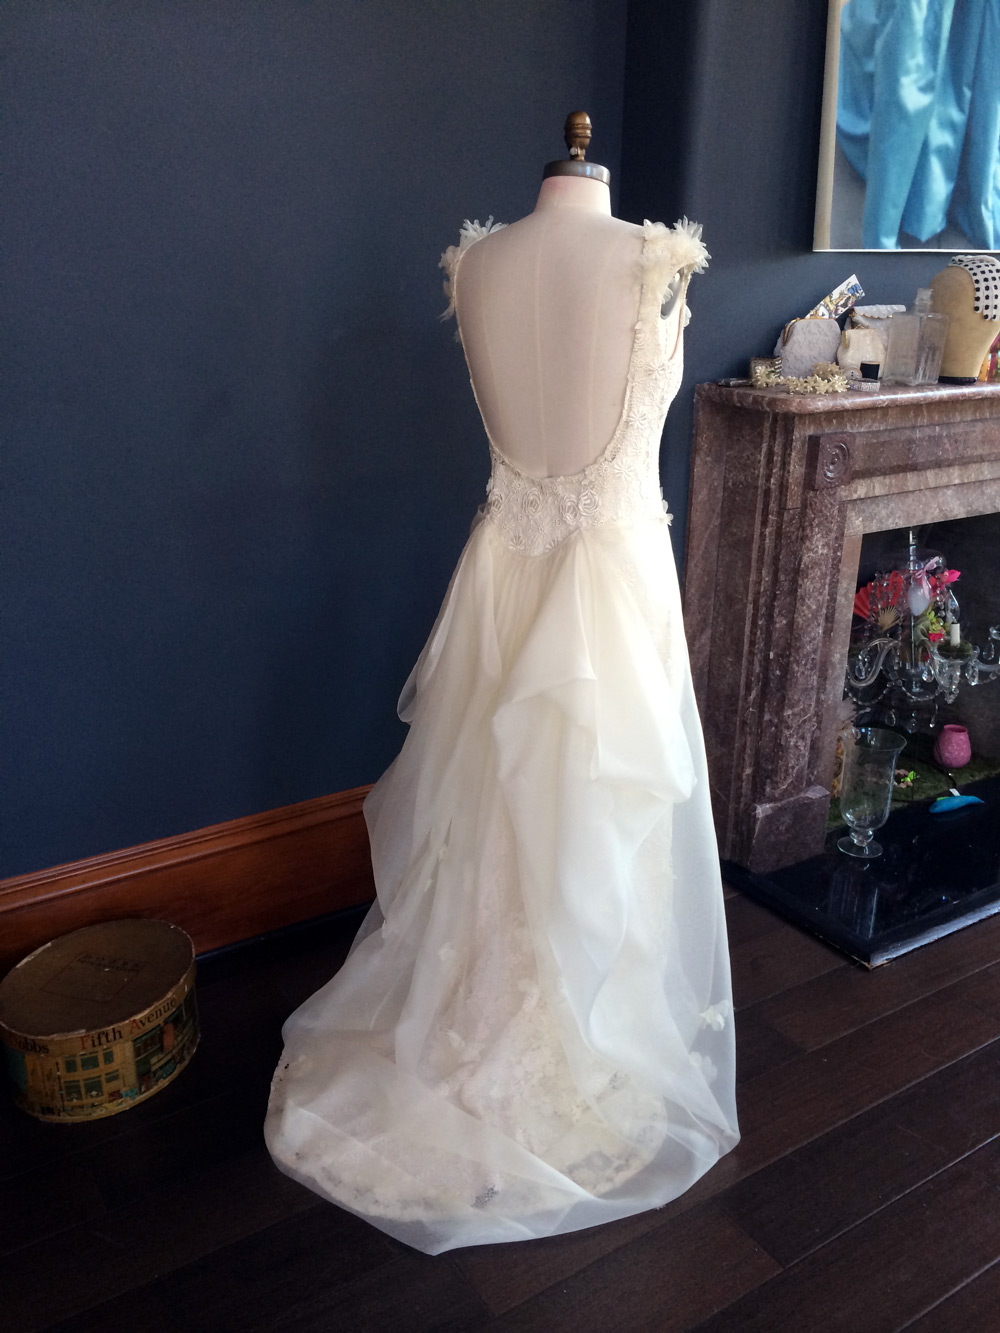 Daisies, roses, and butterflies, oh my! The details on Carter's gown were light as air.